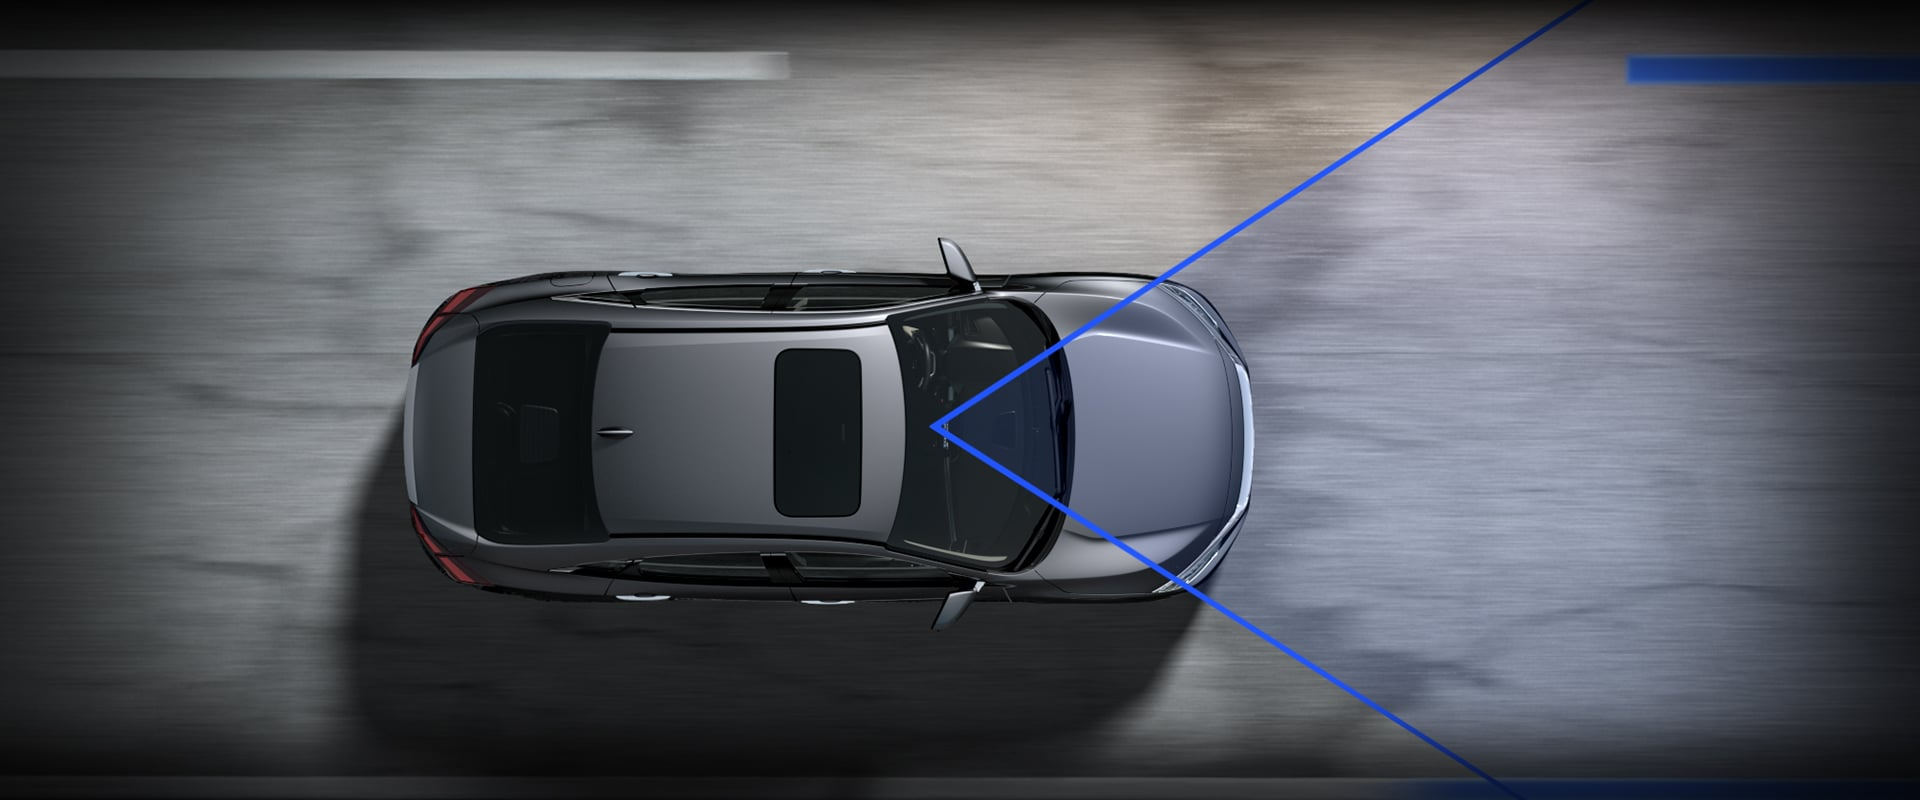 10th Generation Civic Exclusive Pakistan Launch - lane keeping assist system